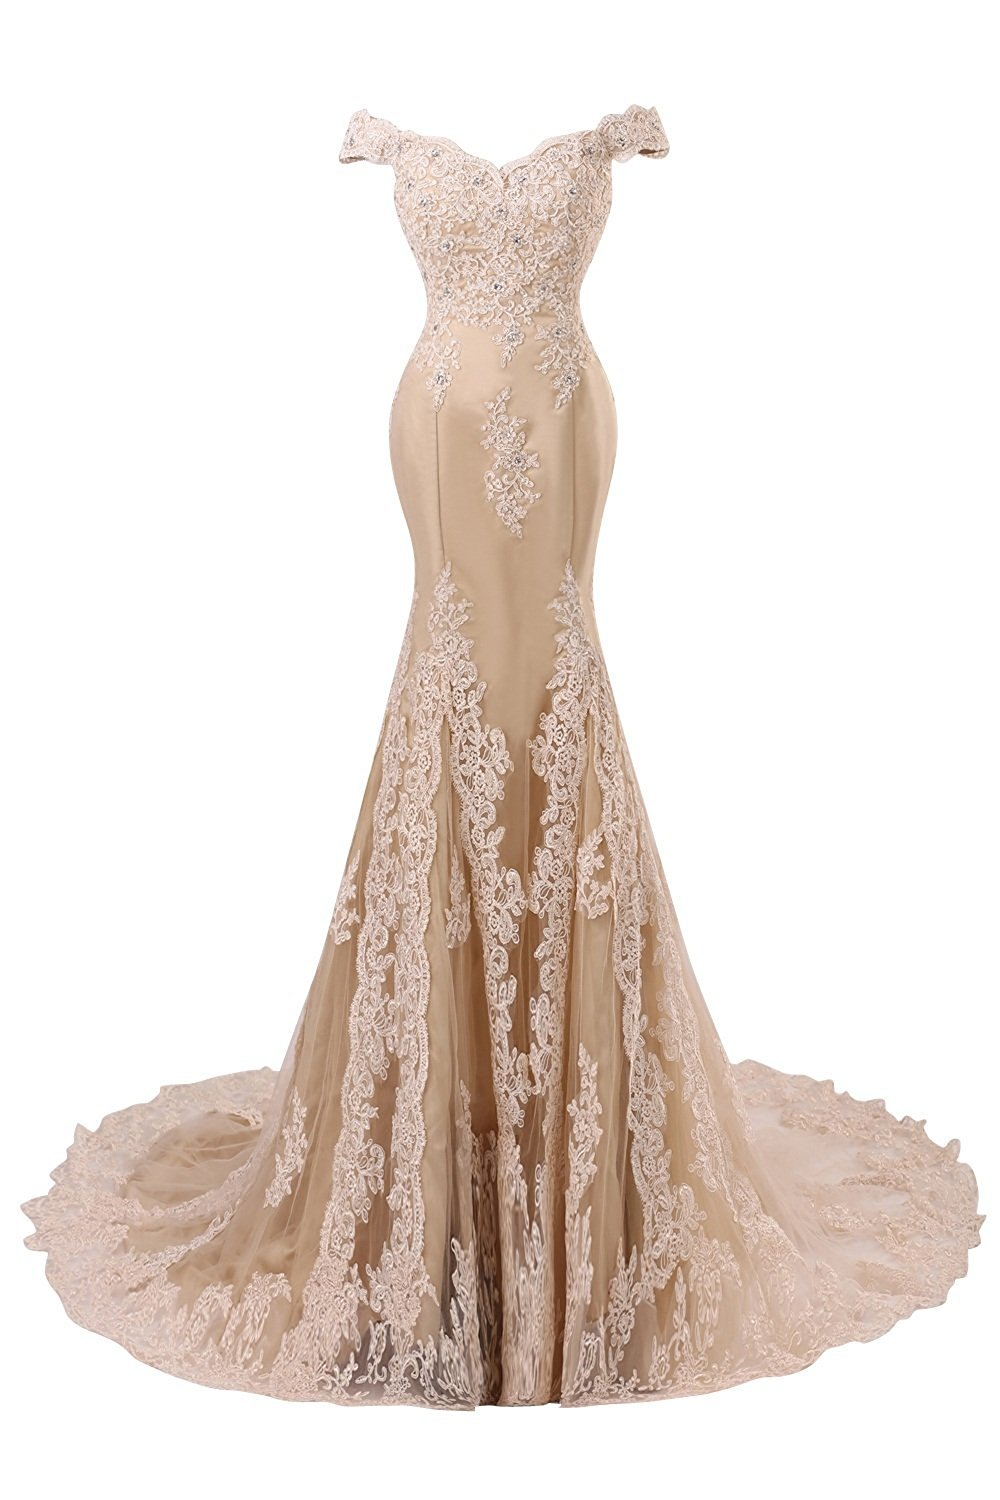 Himoda Women's V Neckline Beaded Evening Gowns Mermaid Lace Prom Dresses Long H074 8 Champagne